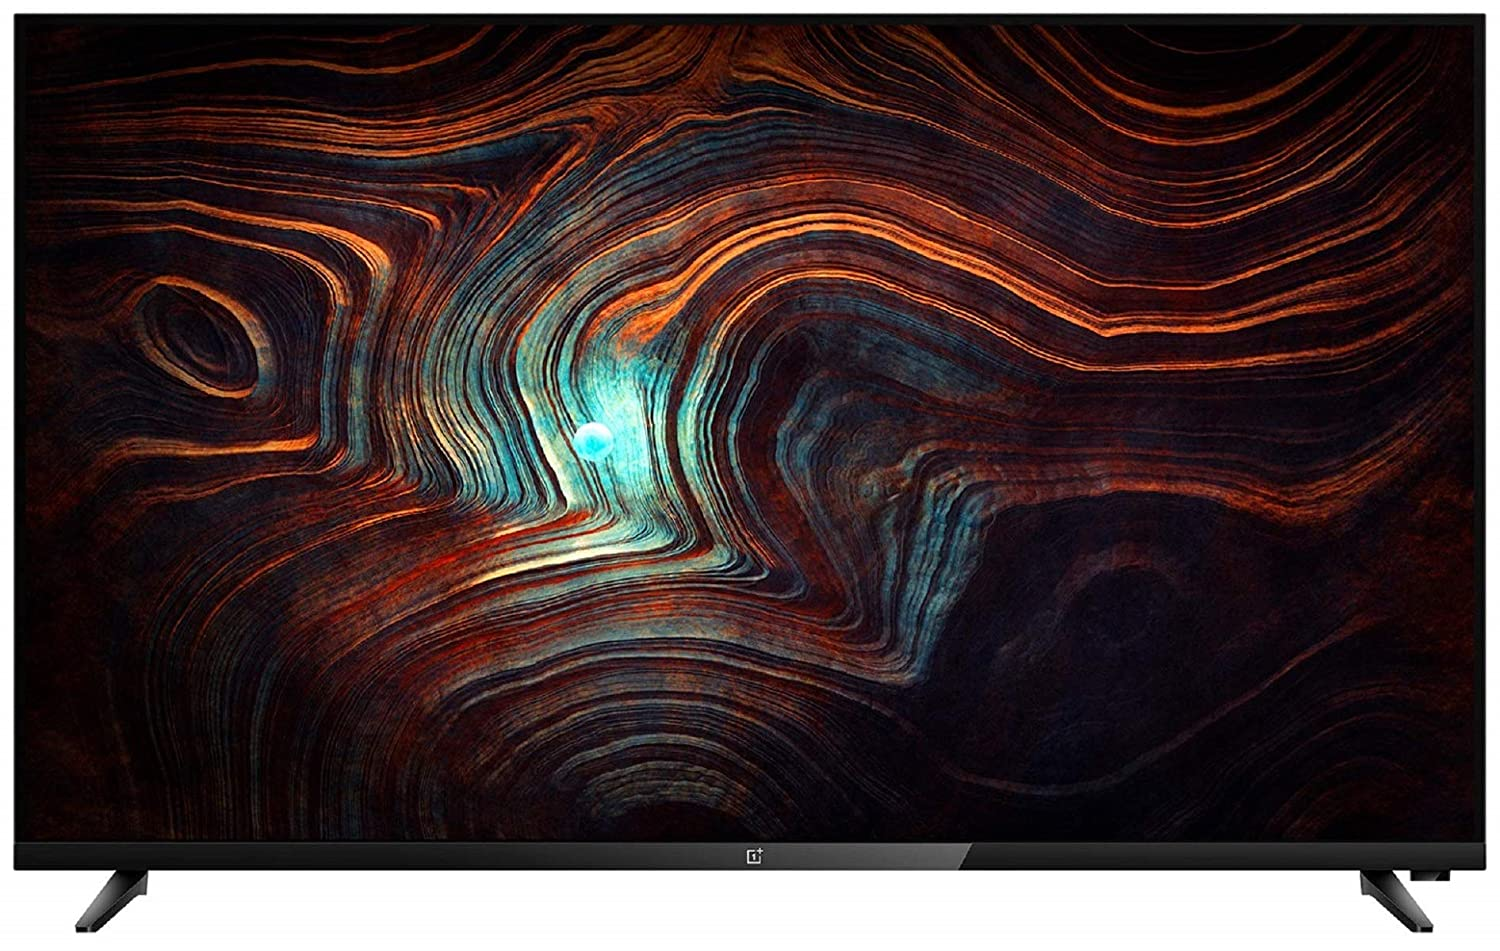 Best Smart TV under 30000 Rs in India.